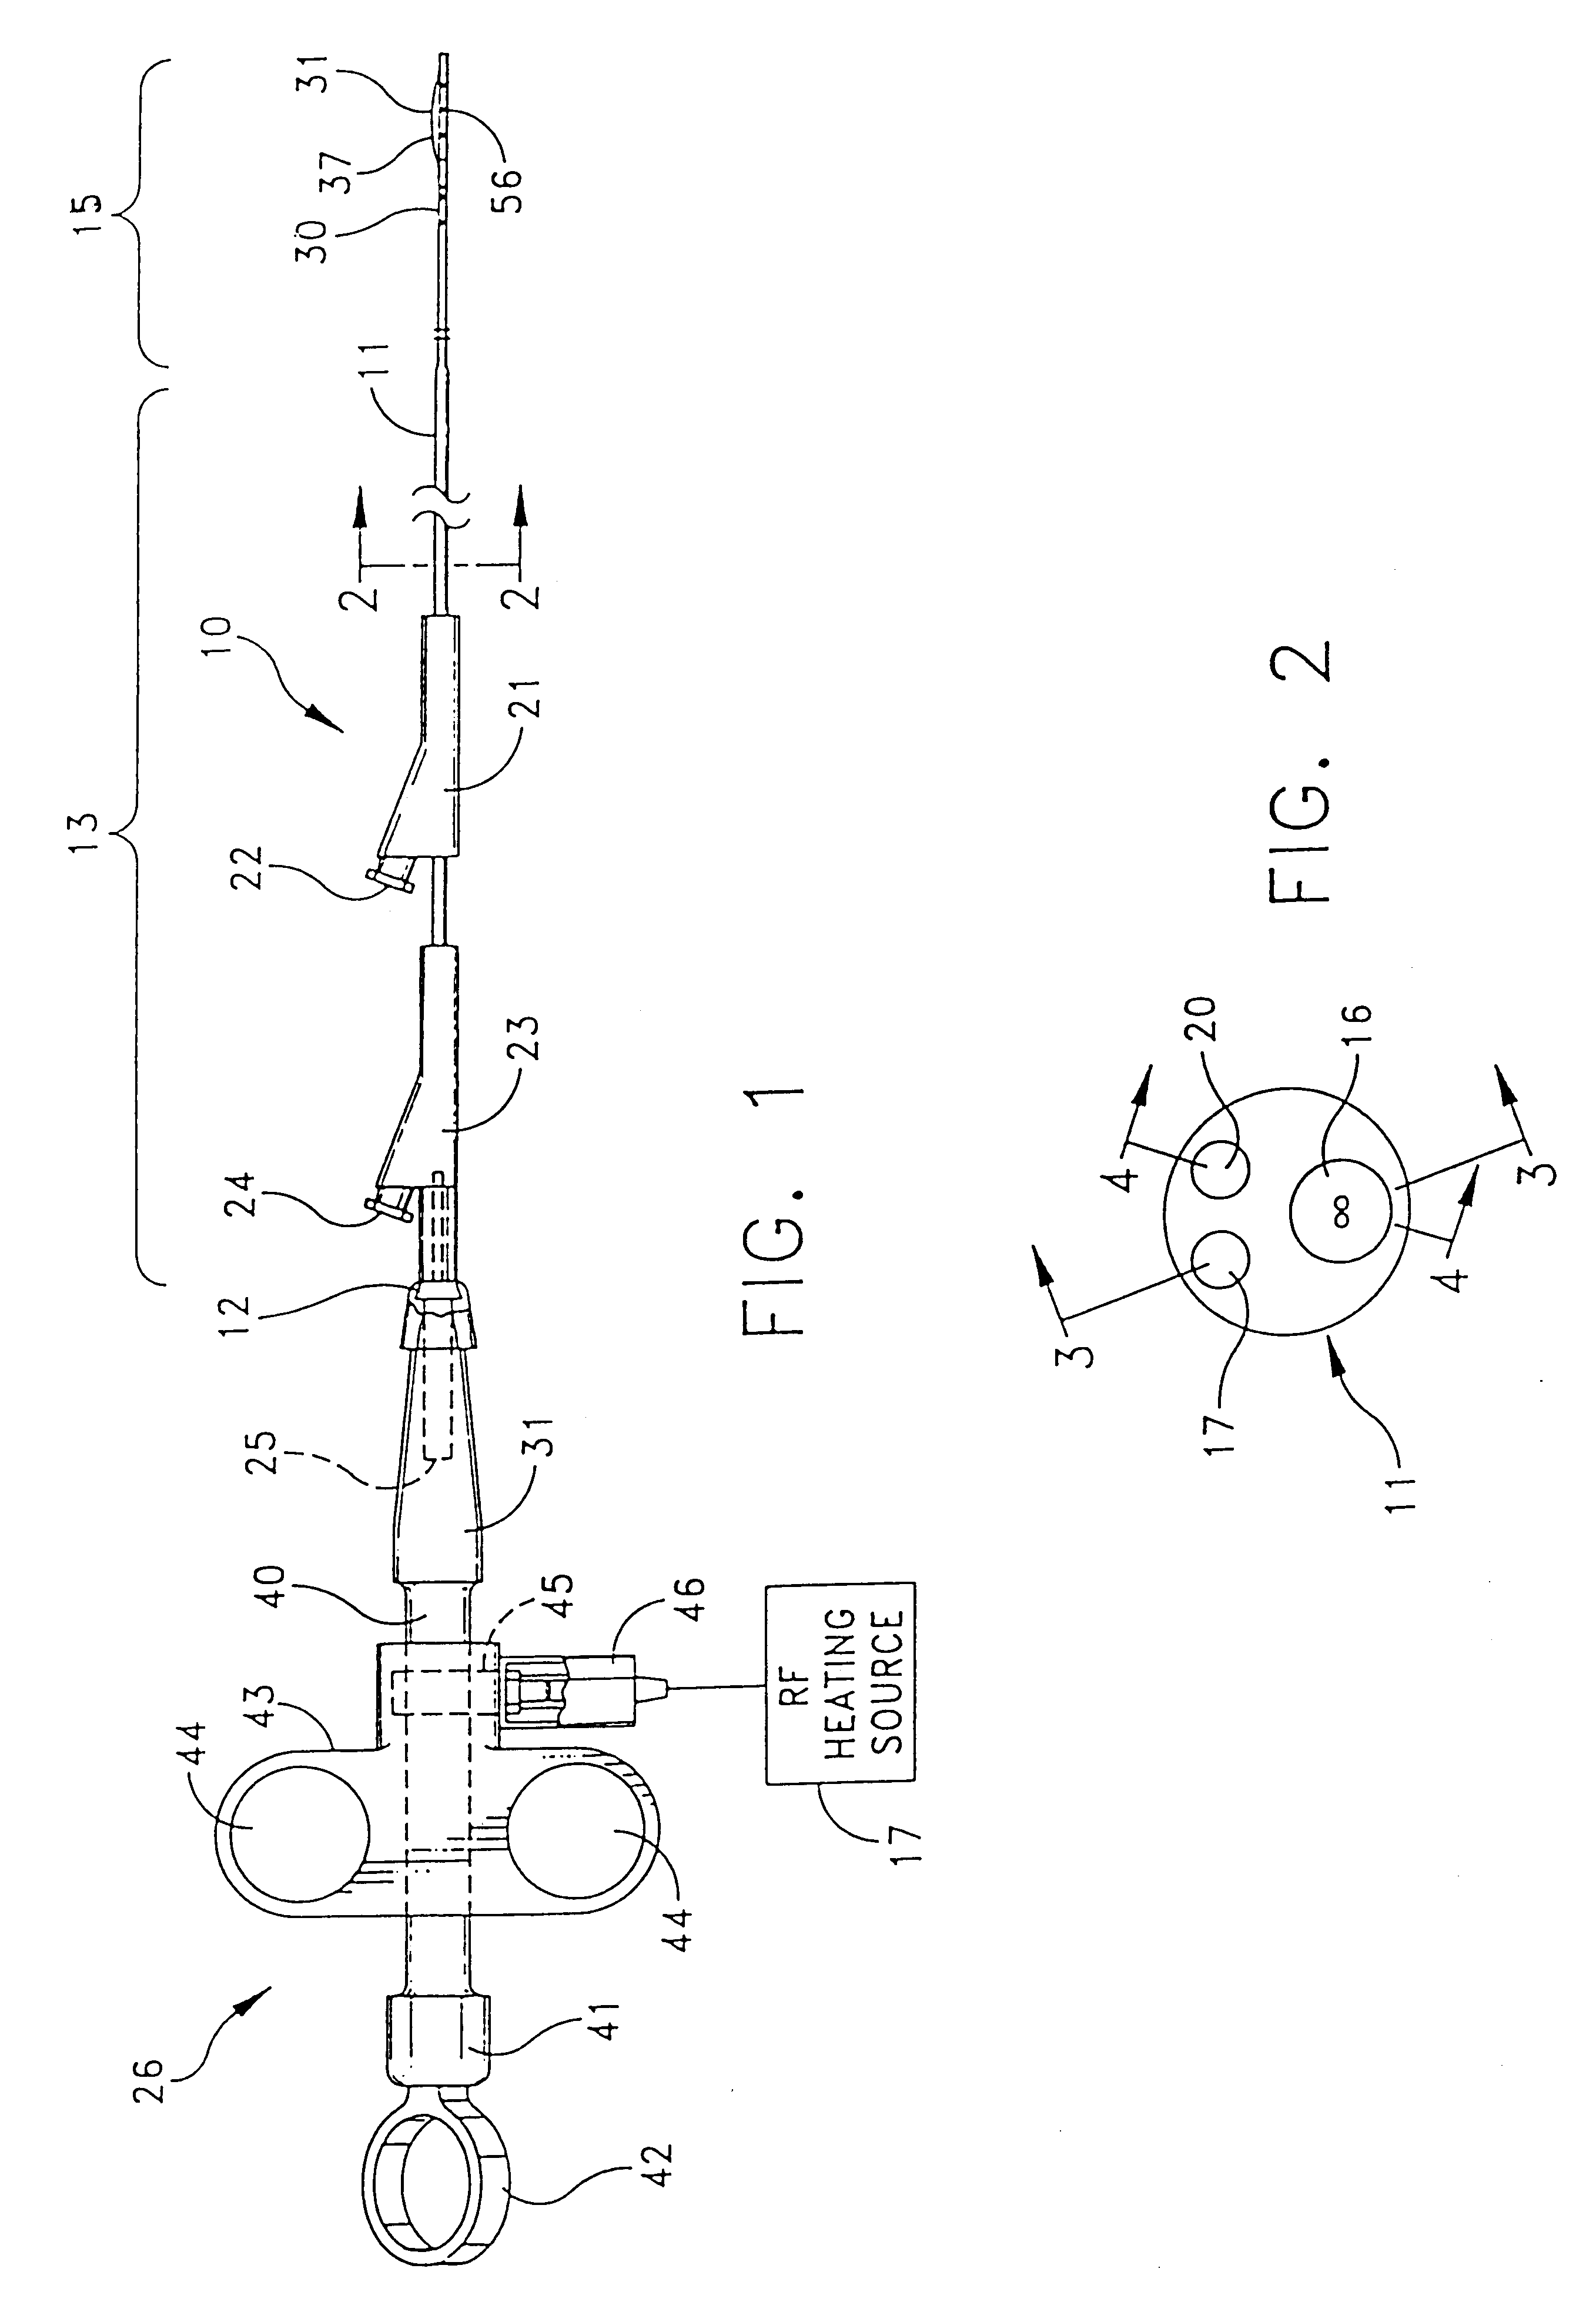 brevet us6443924 apparatus for performing diagnostic and